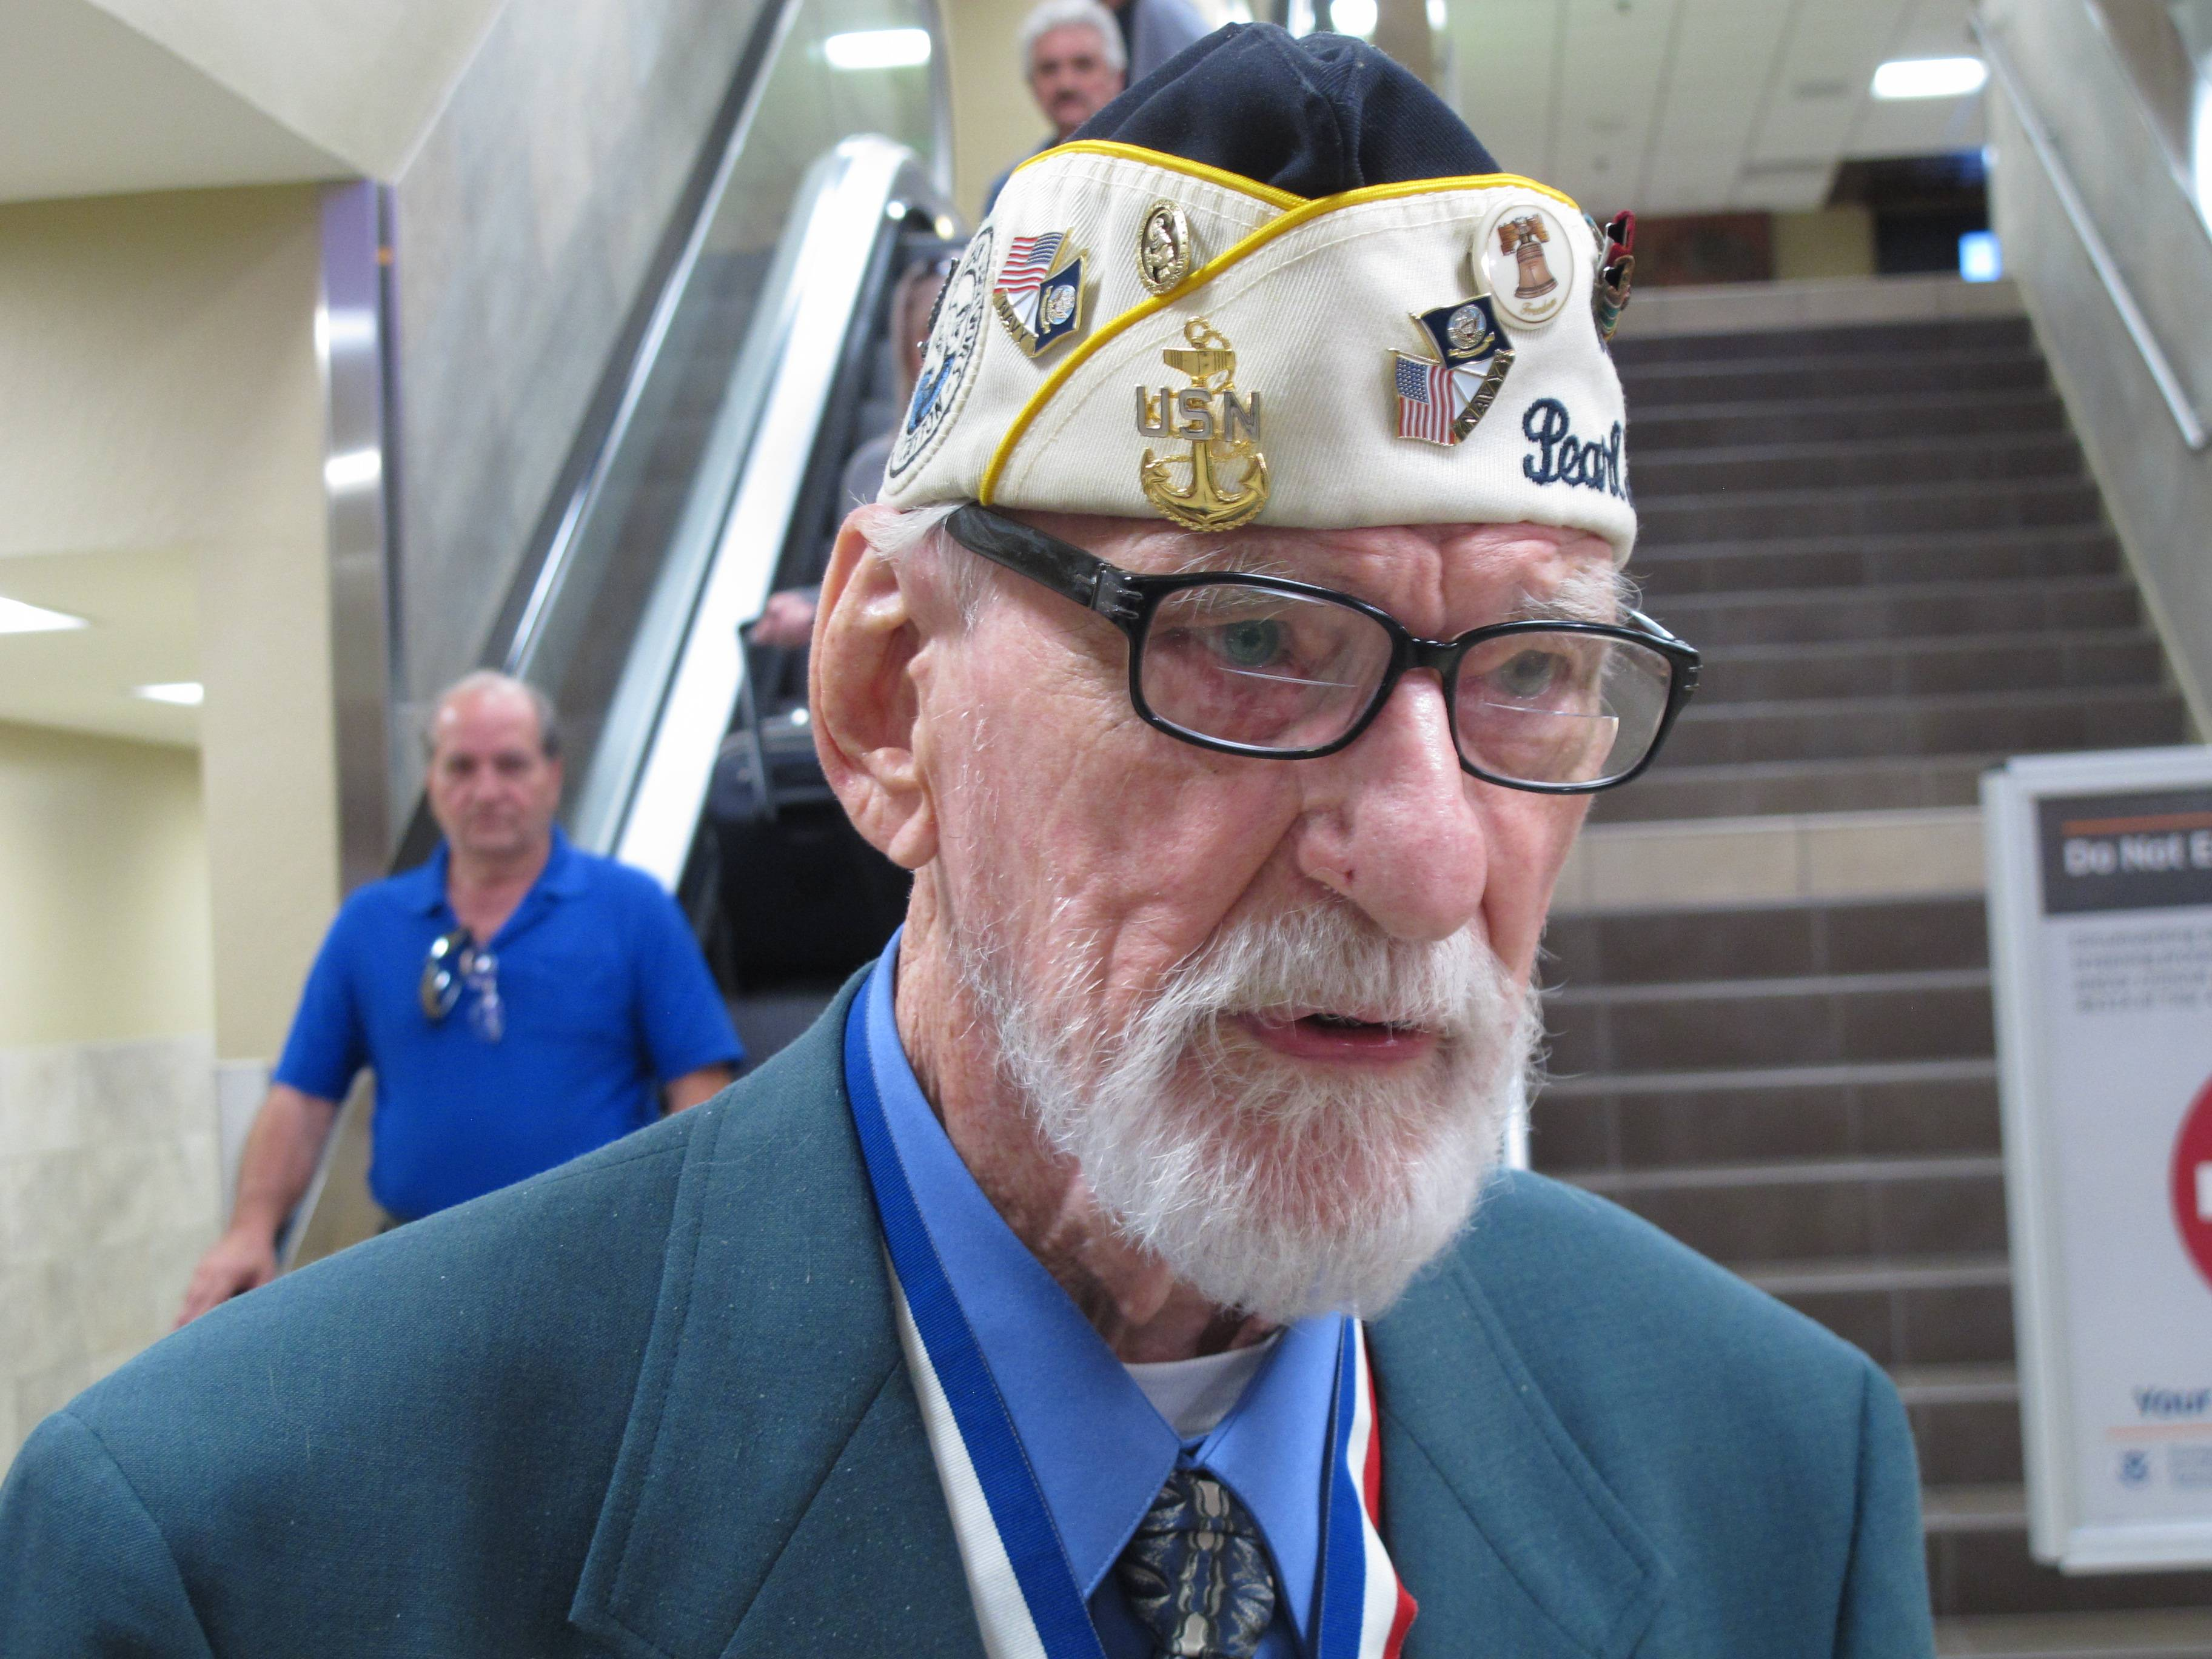 Pearl Harbor survivor Charles T. Sehe, 93, was nearly killed on board the USS Nevada during the attack on Pearl Harbor and continued to serve on the battleship when it aided in the invasions at Normandy and Iwo Jima during World War II.